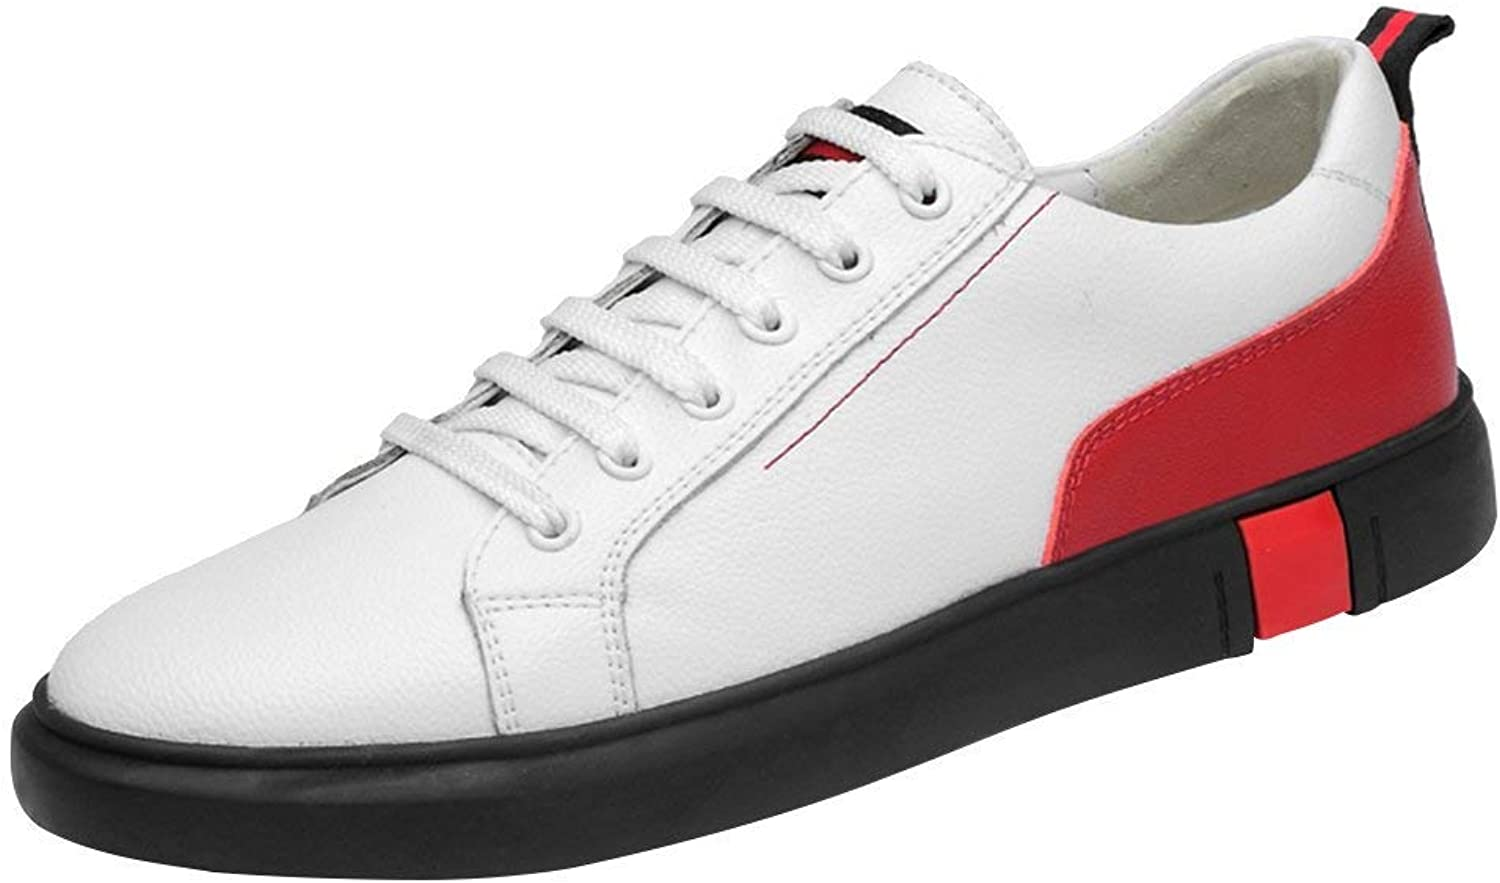 Men's Casual British Style Flat Leather shoes All Match Modern Street Low Top